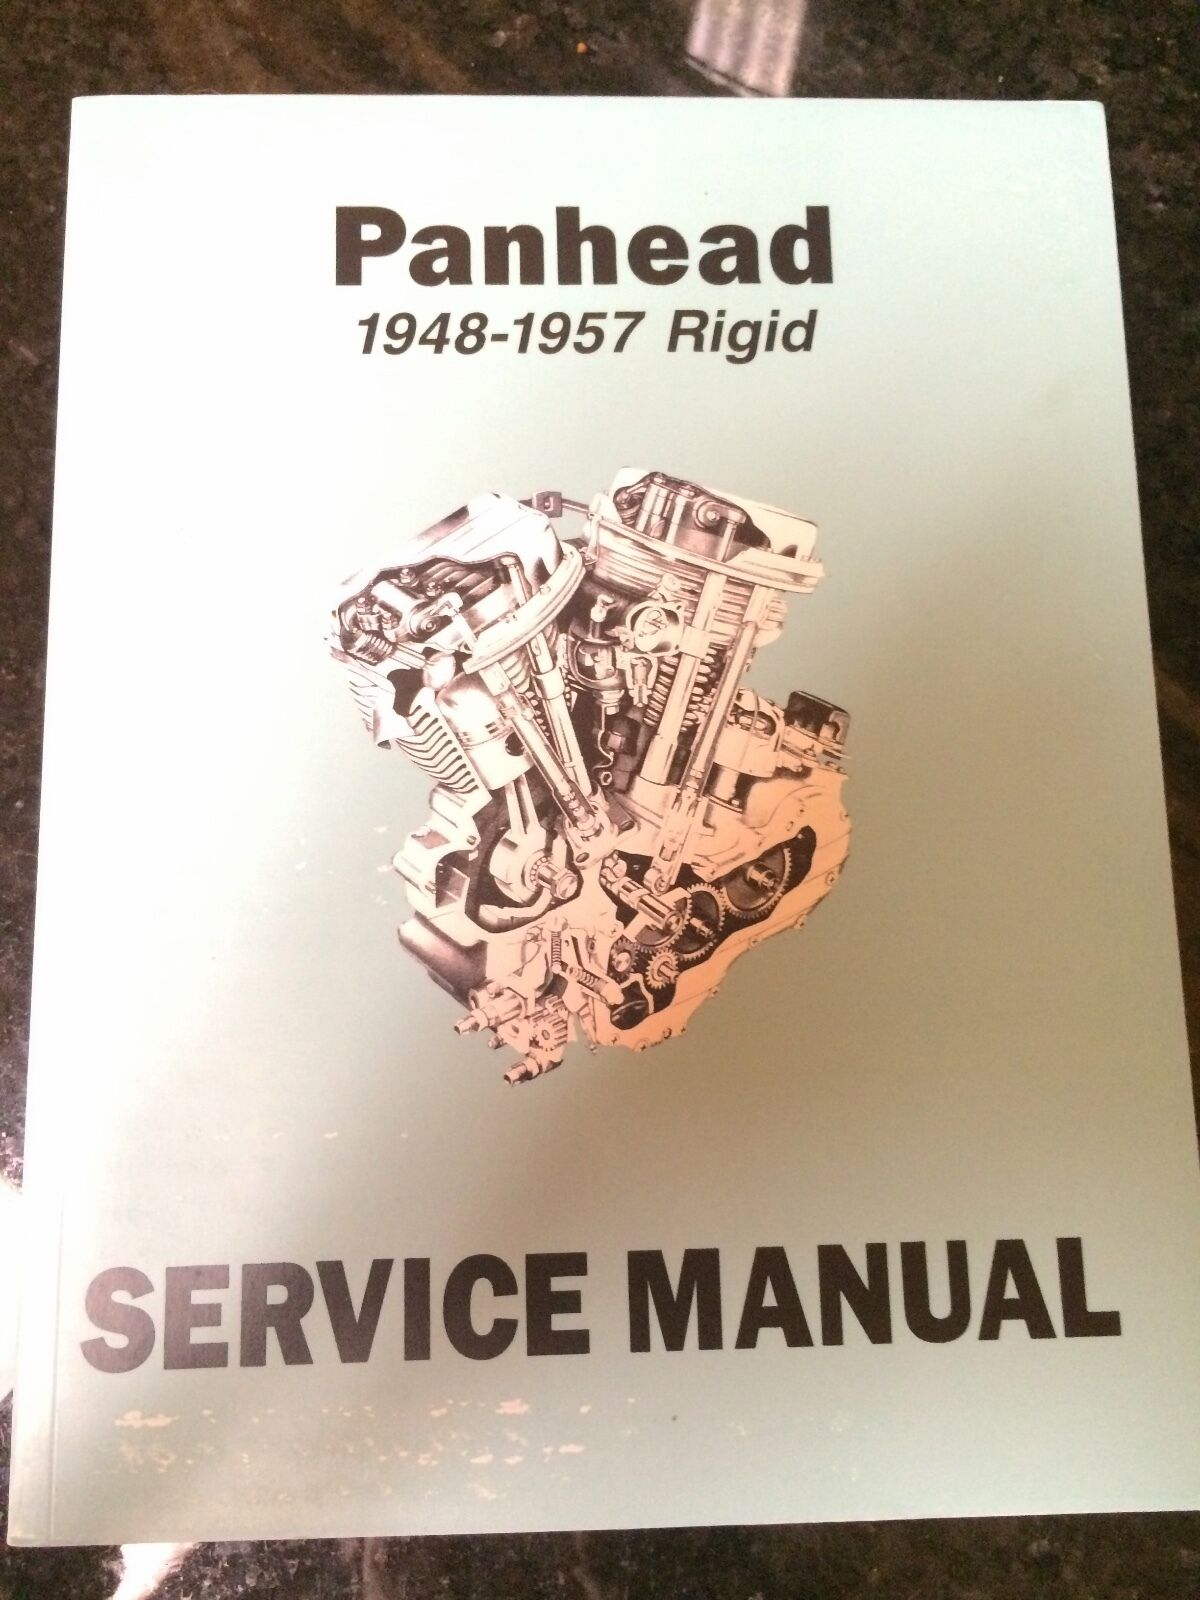 1960 Panhead Wiring Diagram Detailed Schematics 2008 Harley Rocker El Explained Diagrams Light Switch